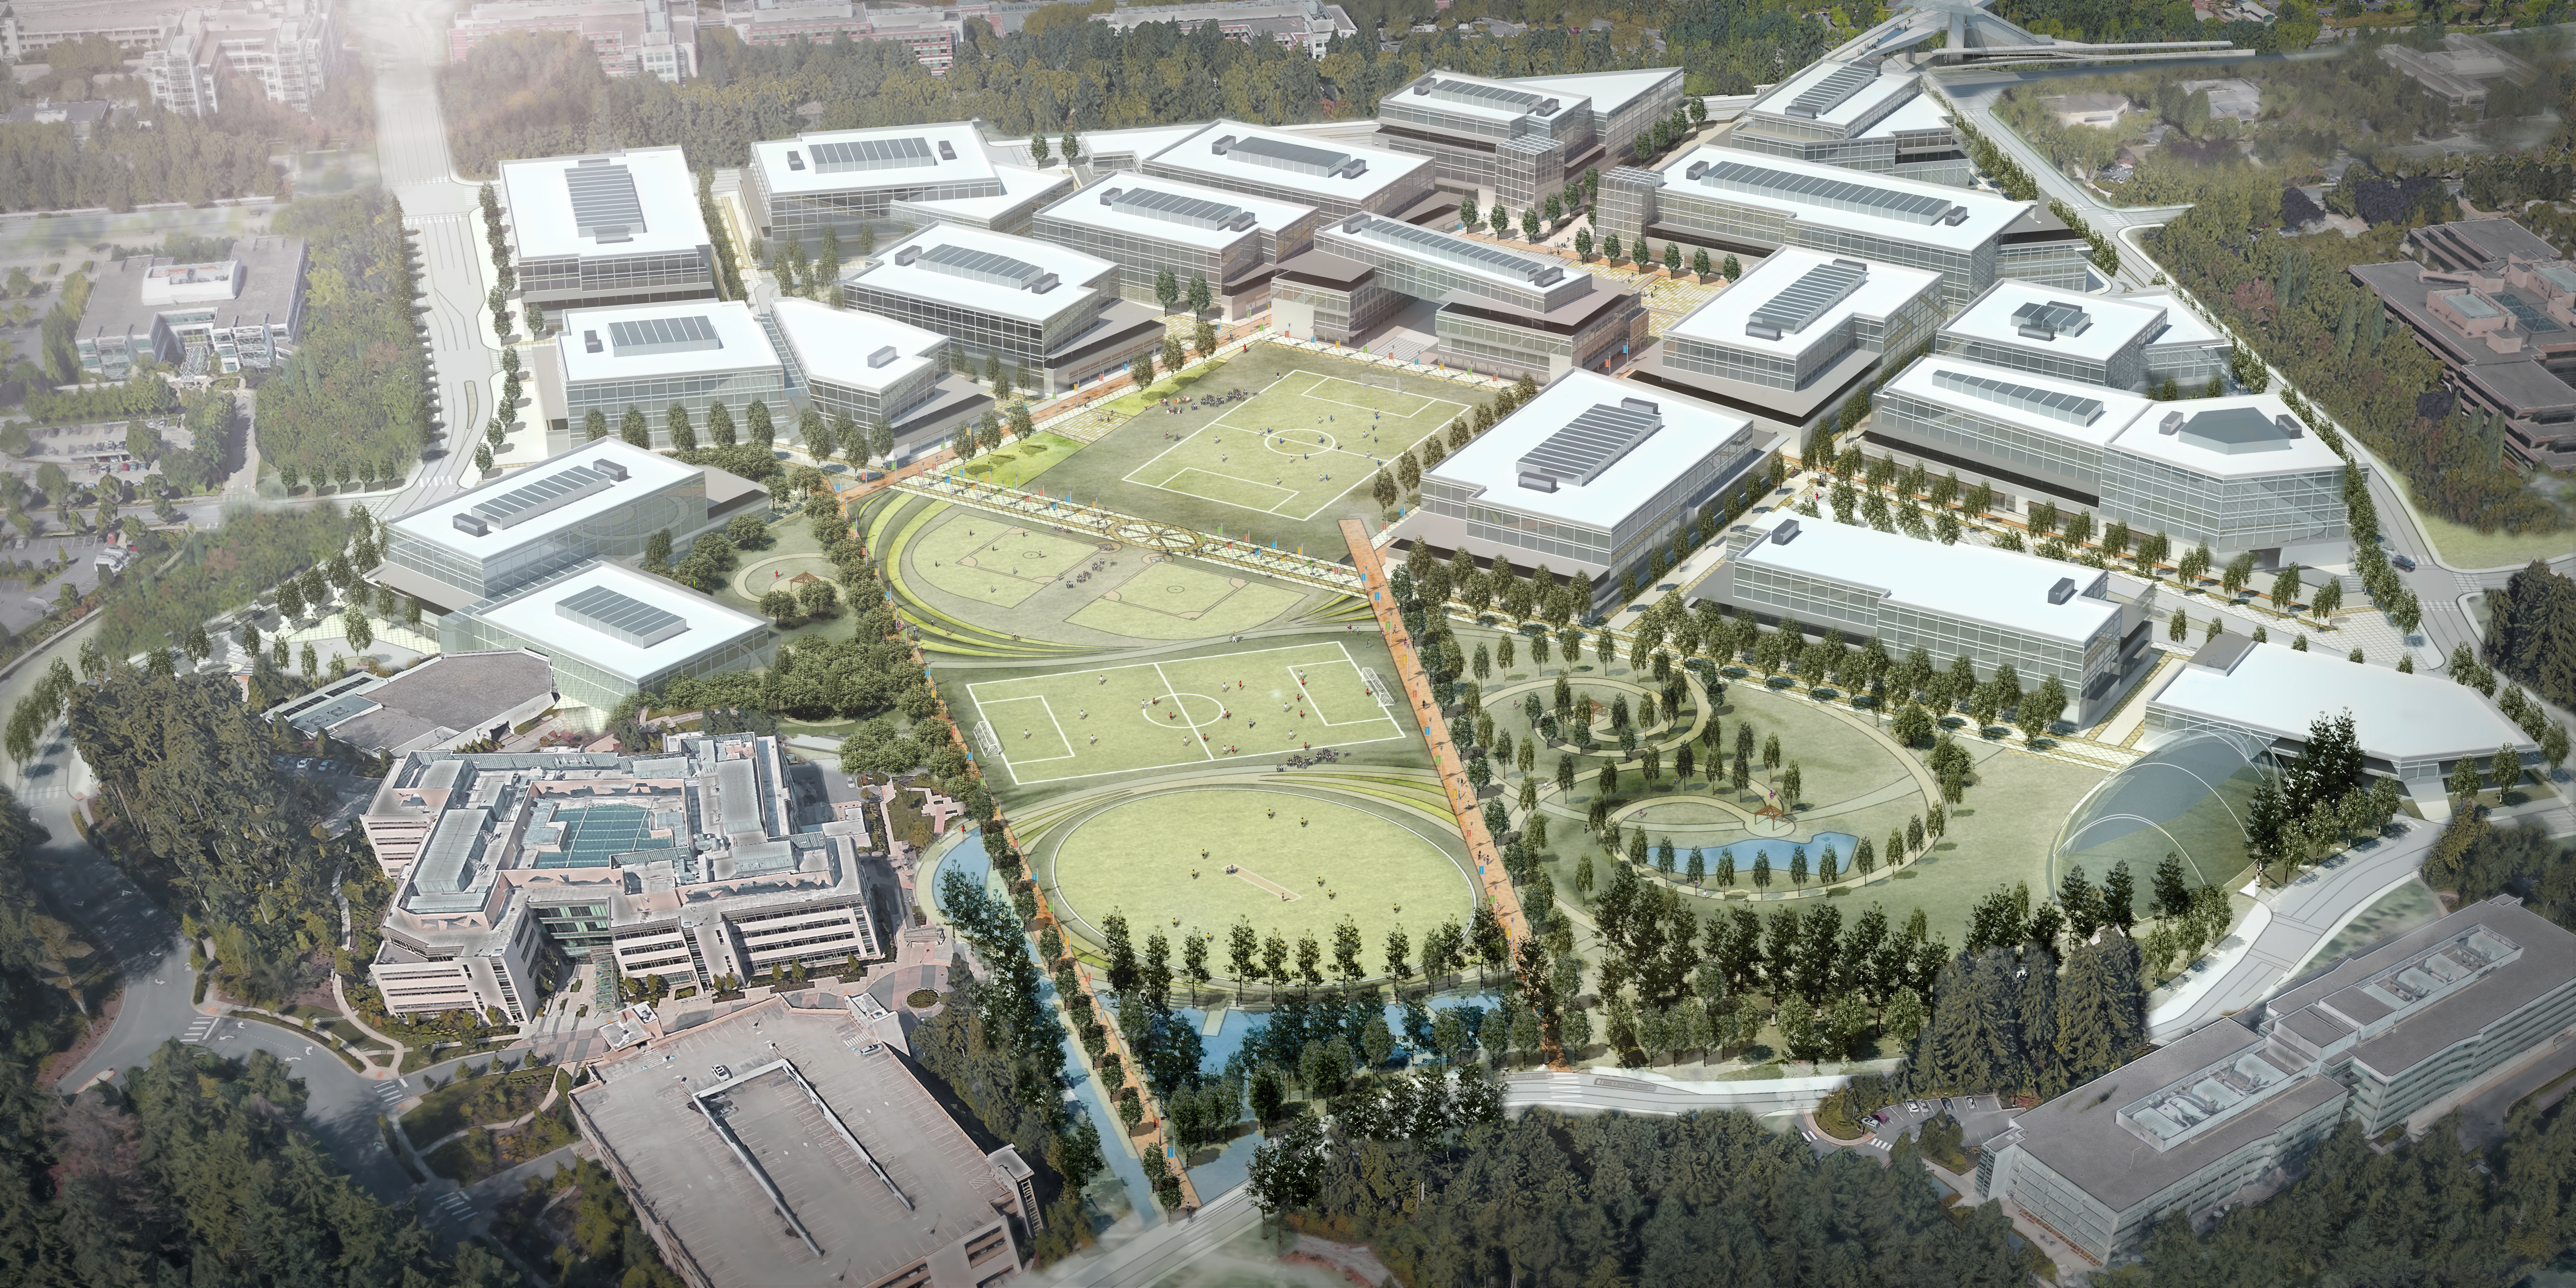 artist rendering of Microsoft campus with cricket field